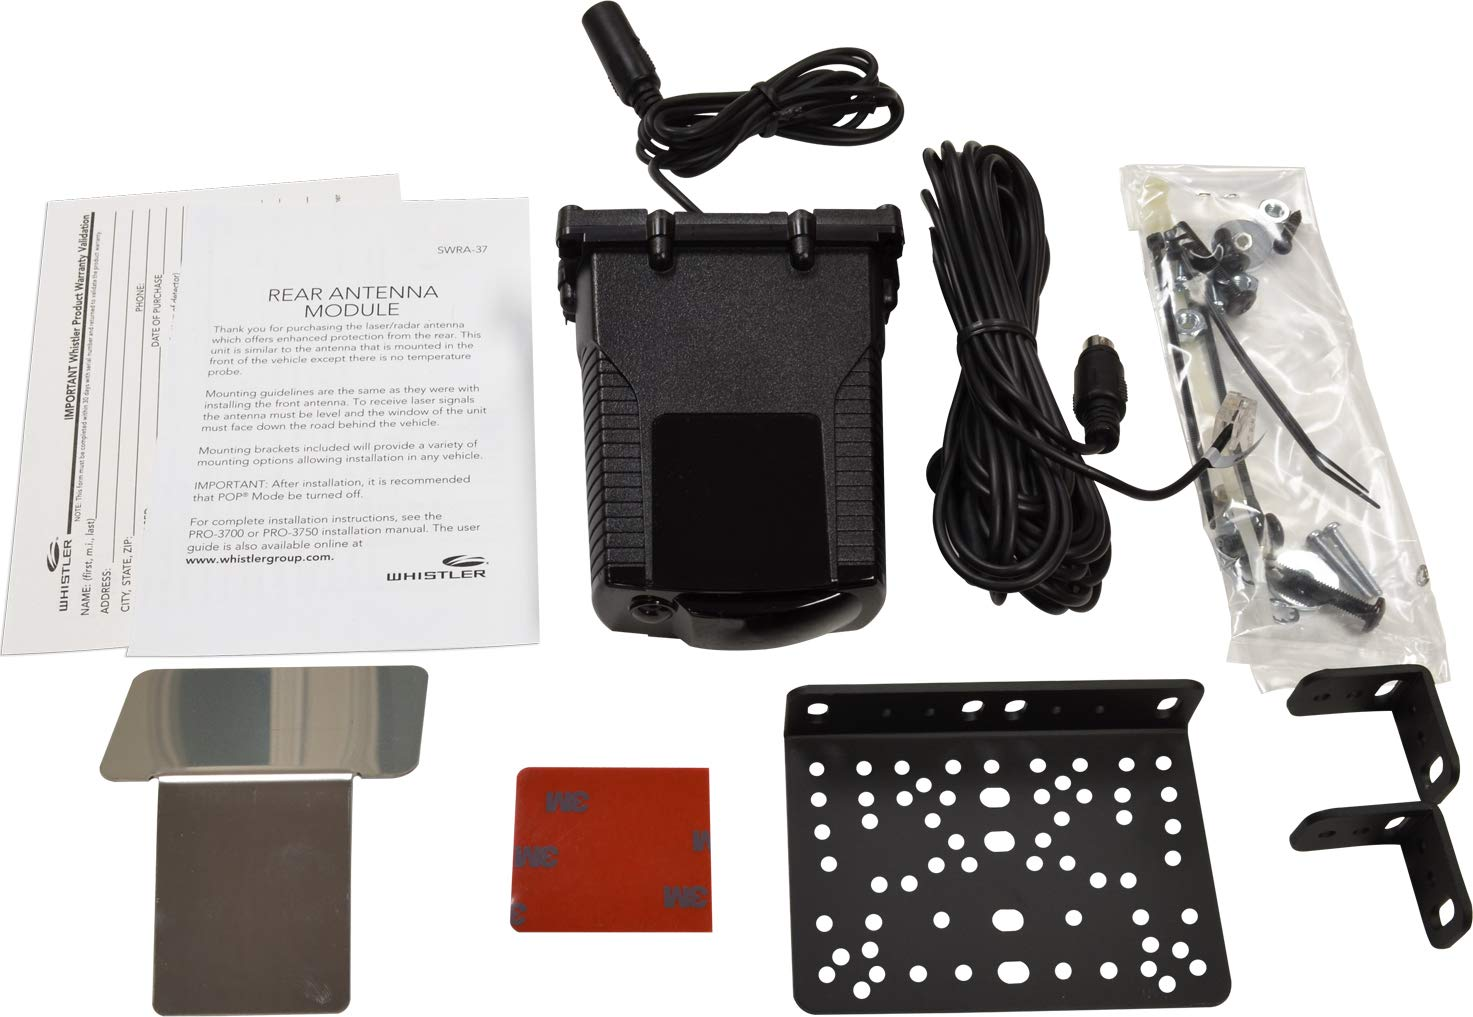 Amazon.com: Whistler SWRA-37 Laser Radar Detector Accessory: Rear Antenna Module: Cell Phones & Accessories